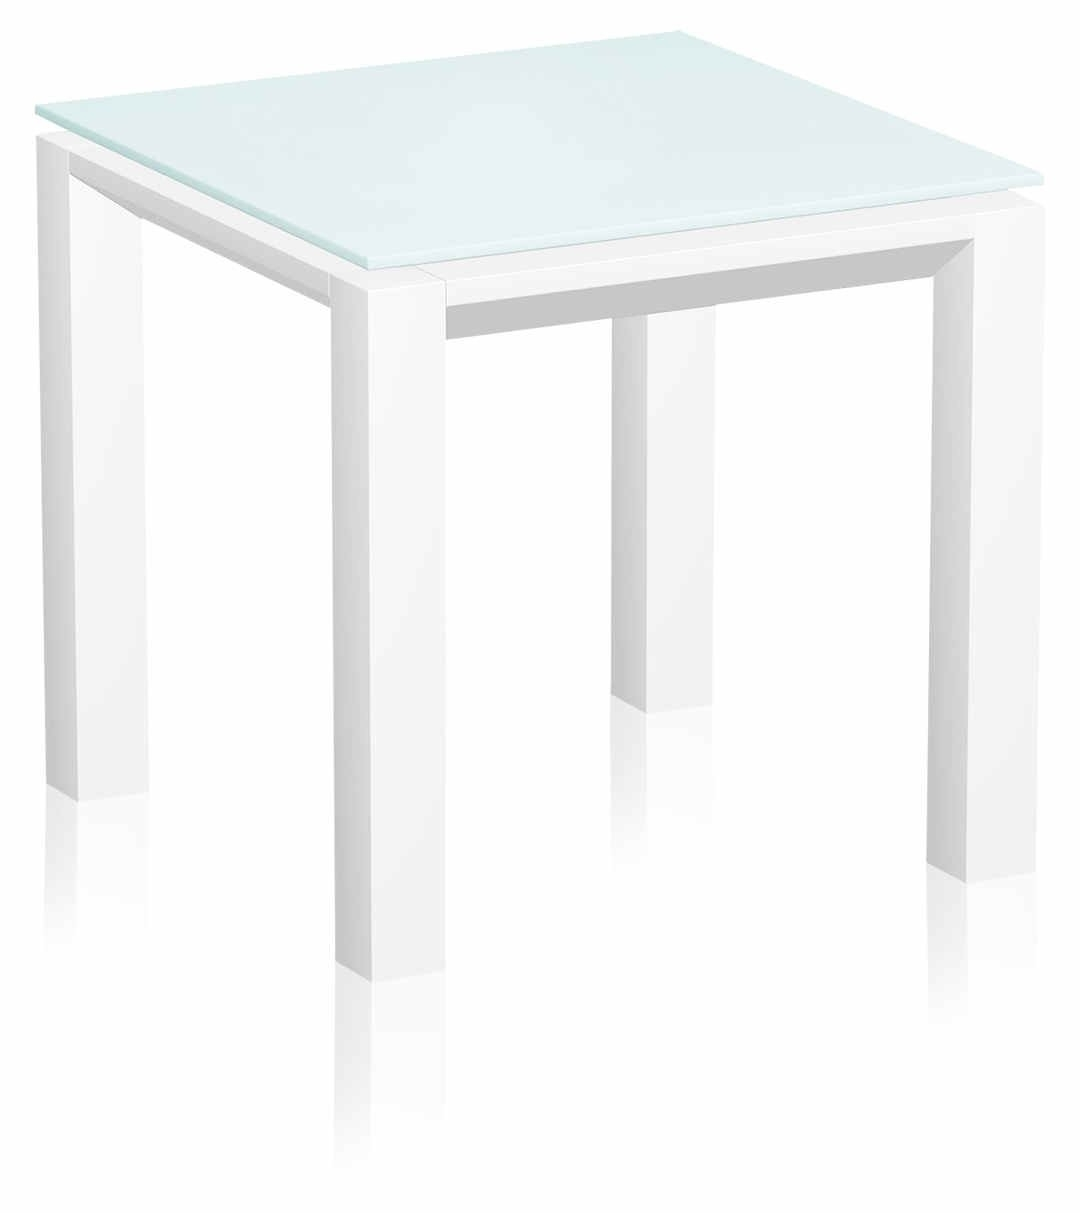 Urbanmod Elba Side Table | Wayfair in Elba Ottoman-Coffee Tables (Image 30 of 30)